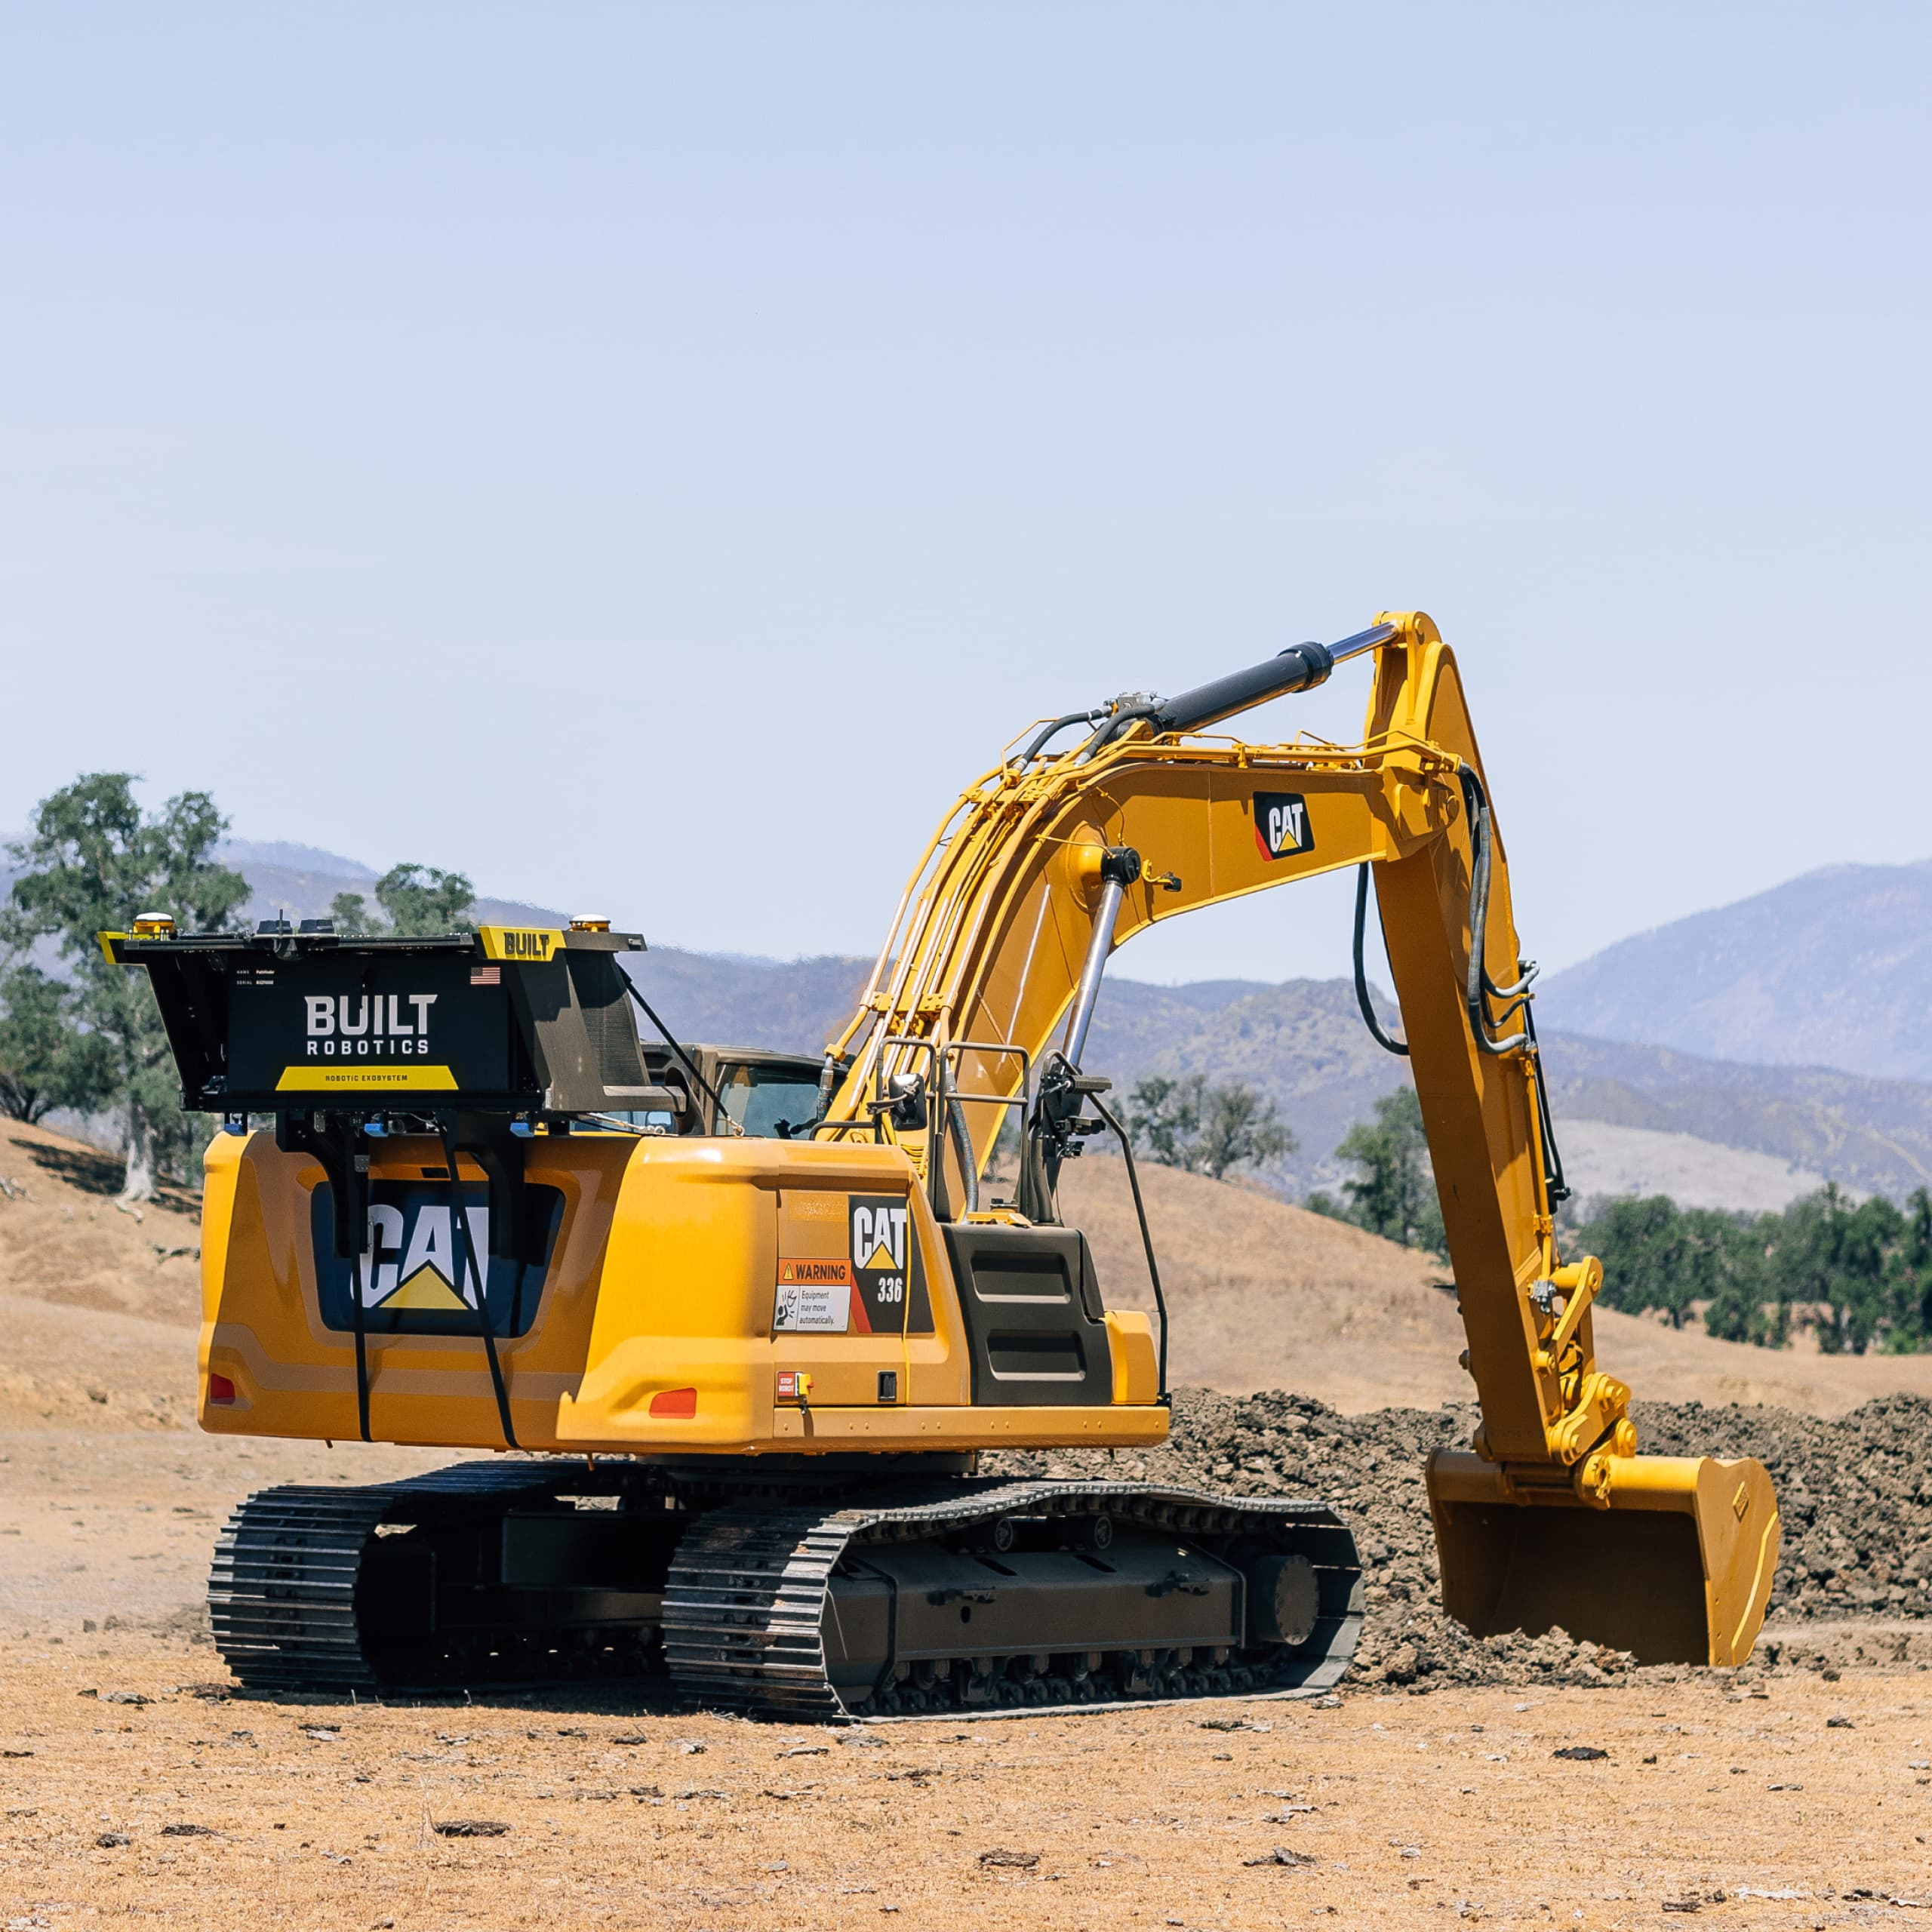 Tail exosystem digging trench autonomously